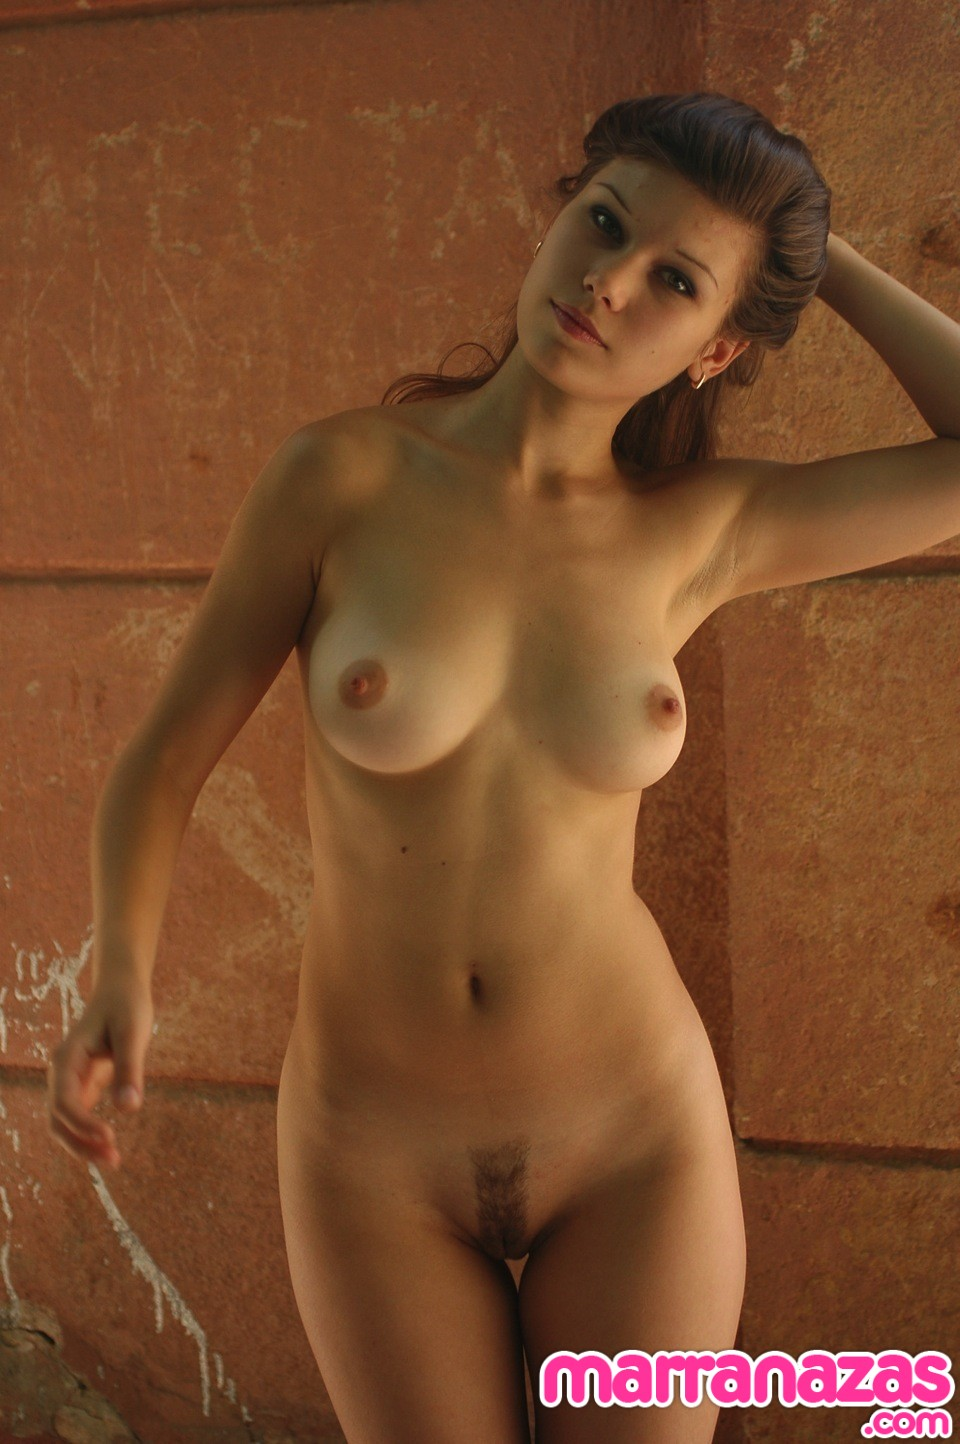 remix-fotos-chicas-22